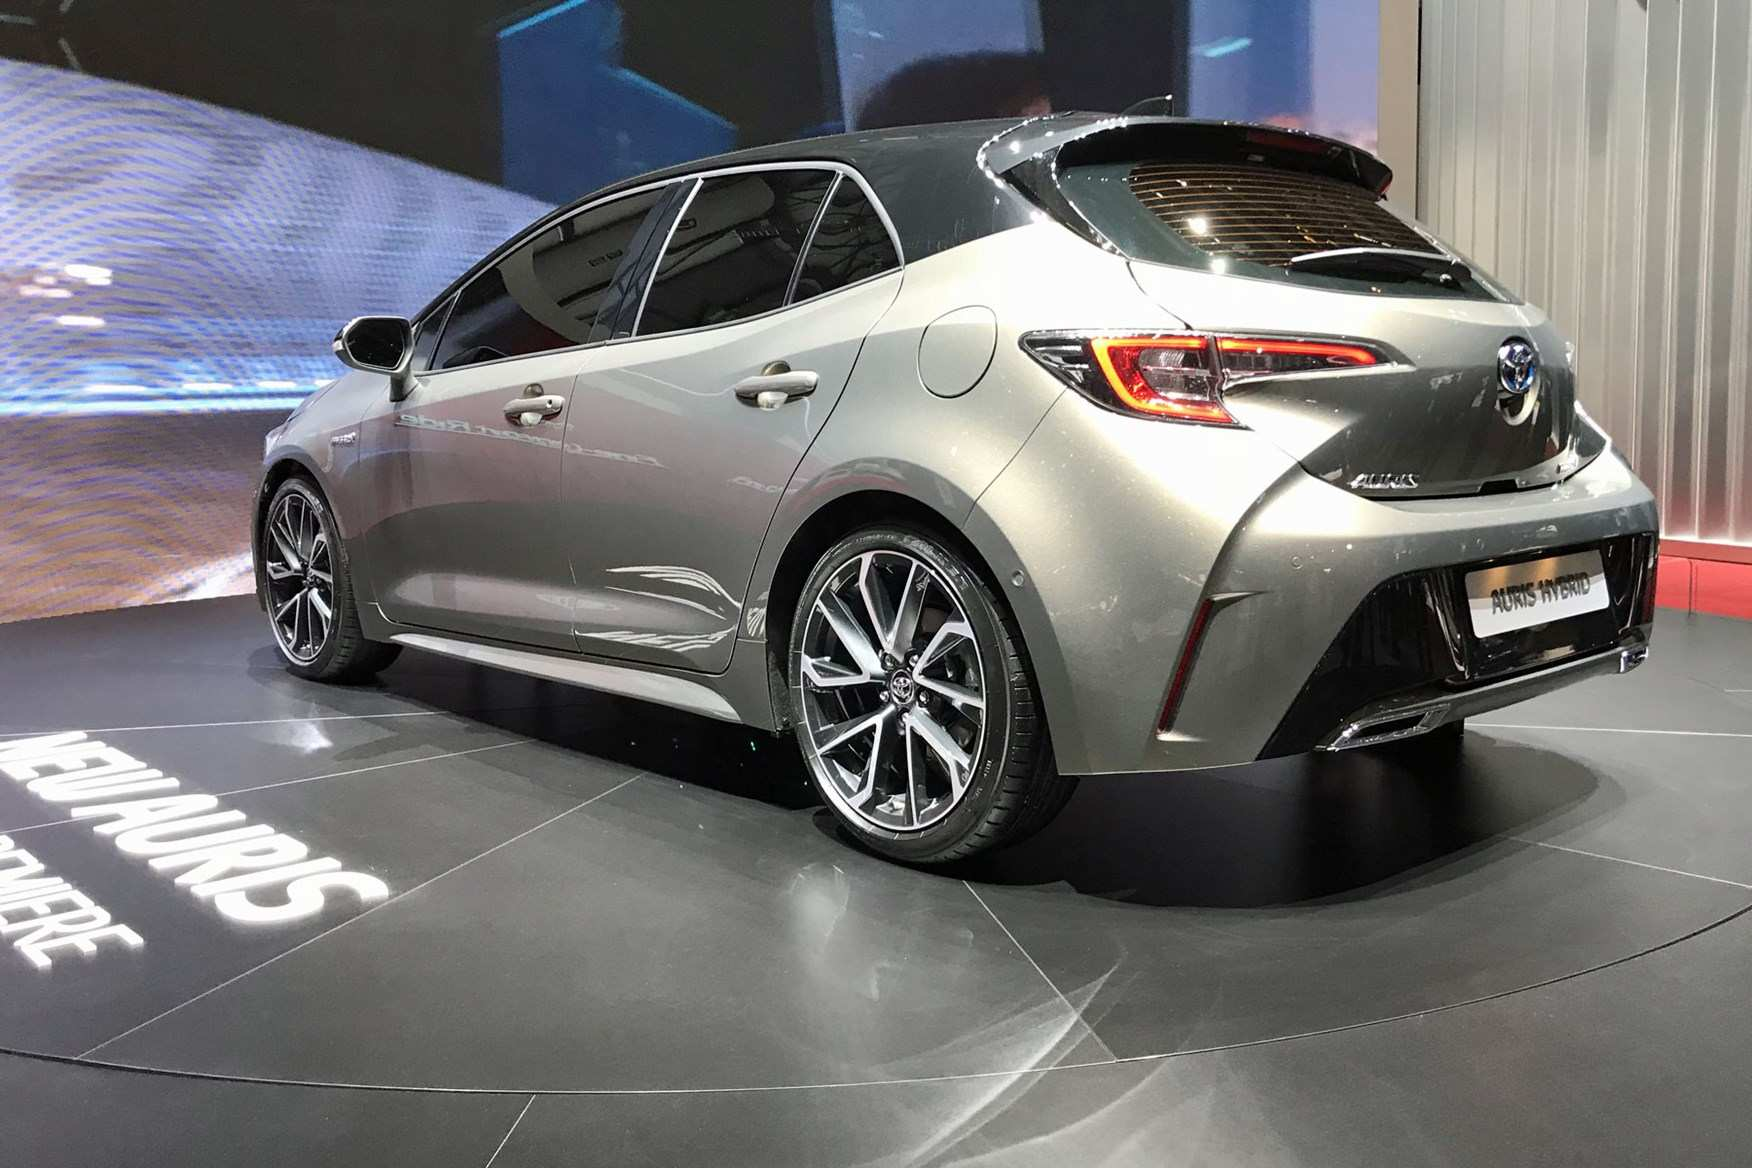 66 Great Toyota Auris 2019 Release Date Exterior and Interior for Toyota Auris 2019 Release Date